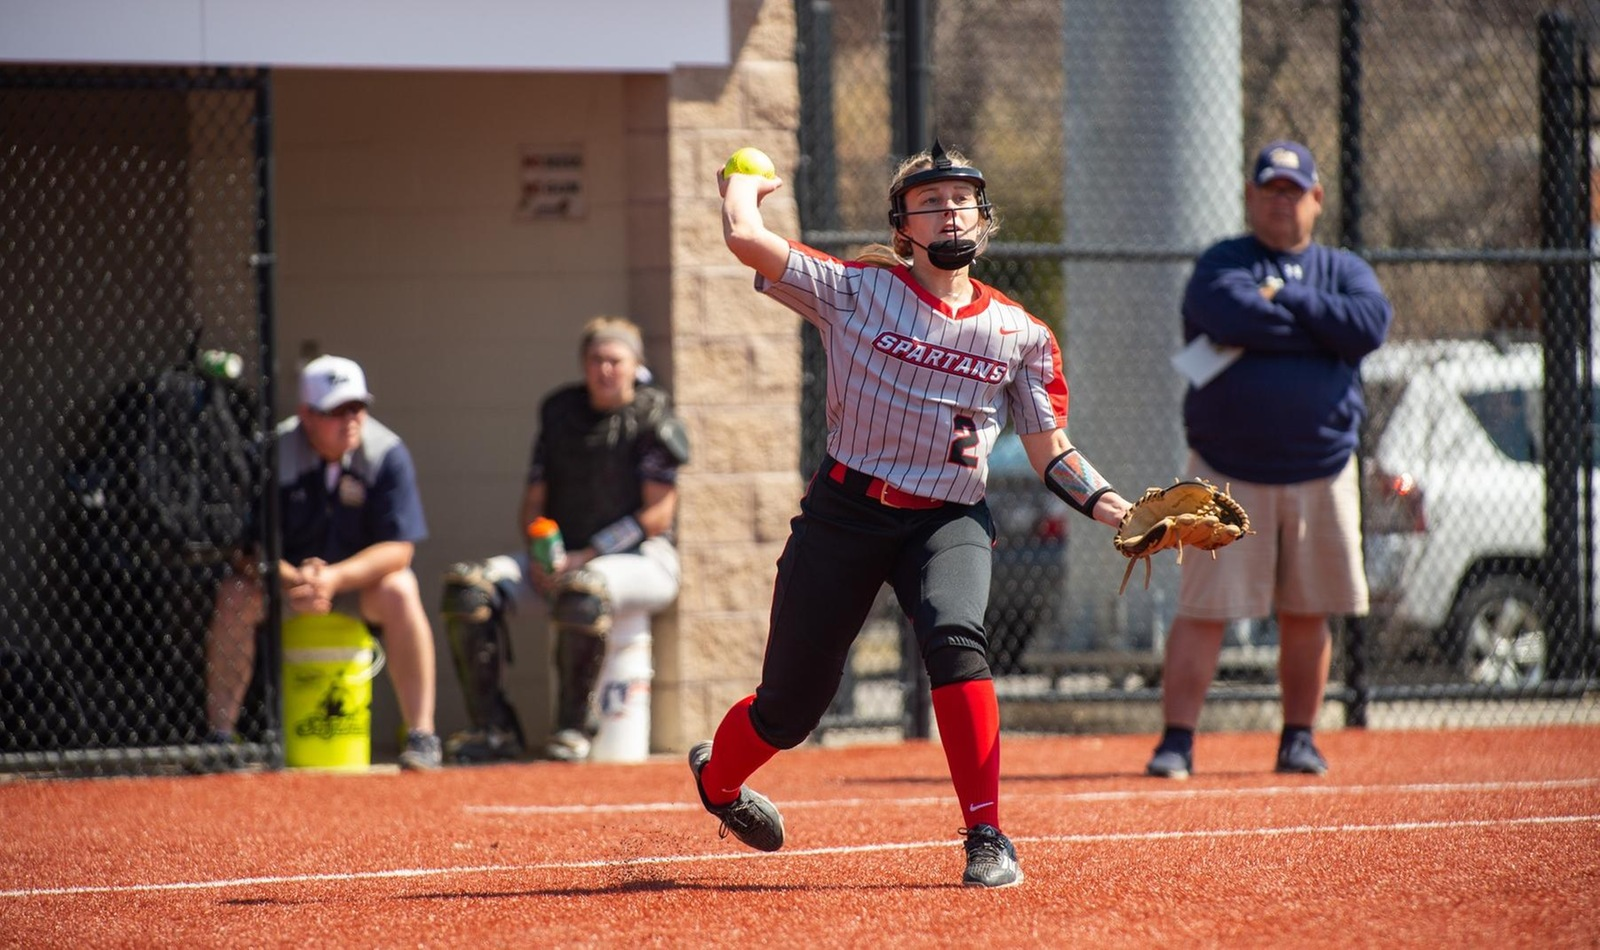 D'Youville Upsets Pitt.-Bradford in Extra Innings to Advance in AMCC Playoffs